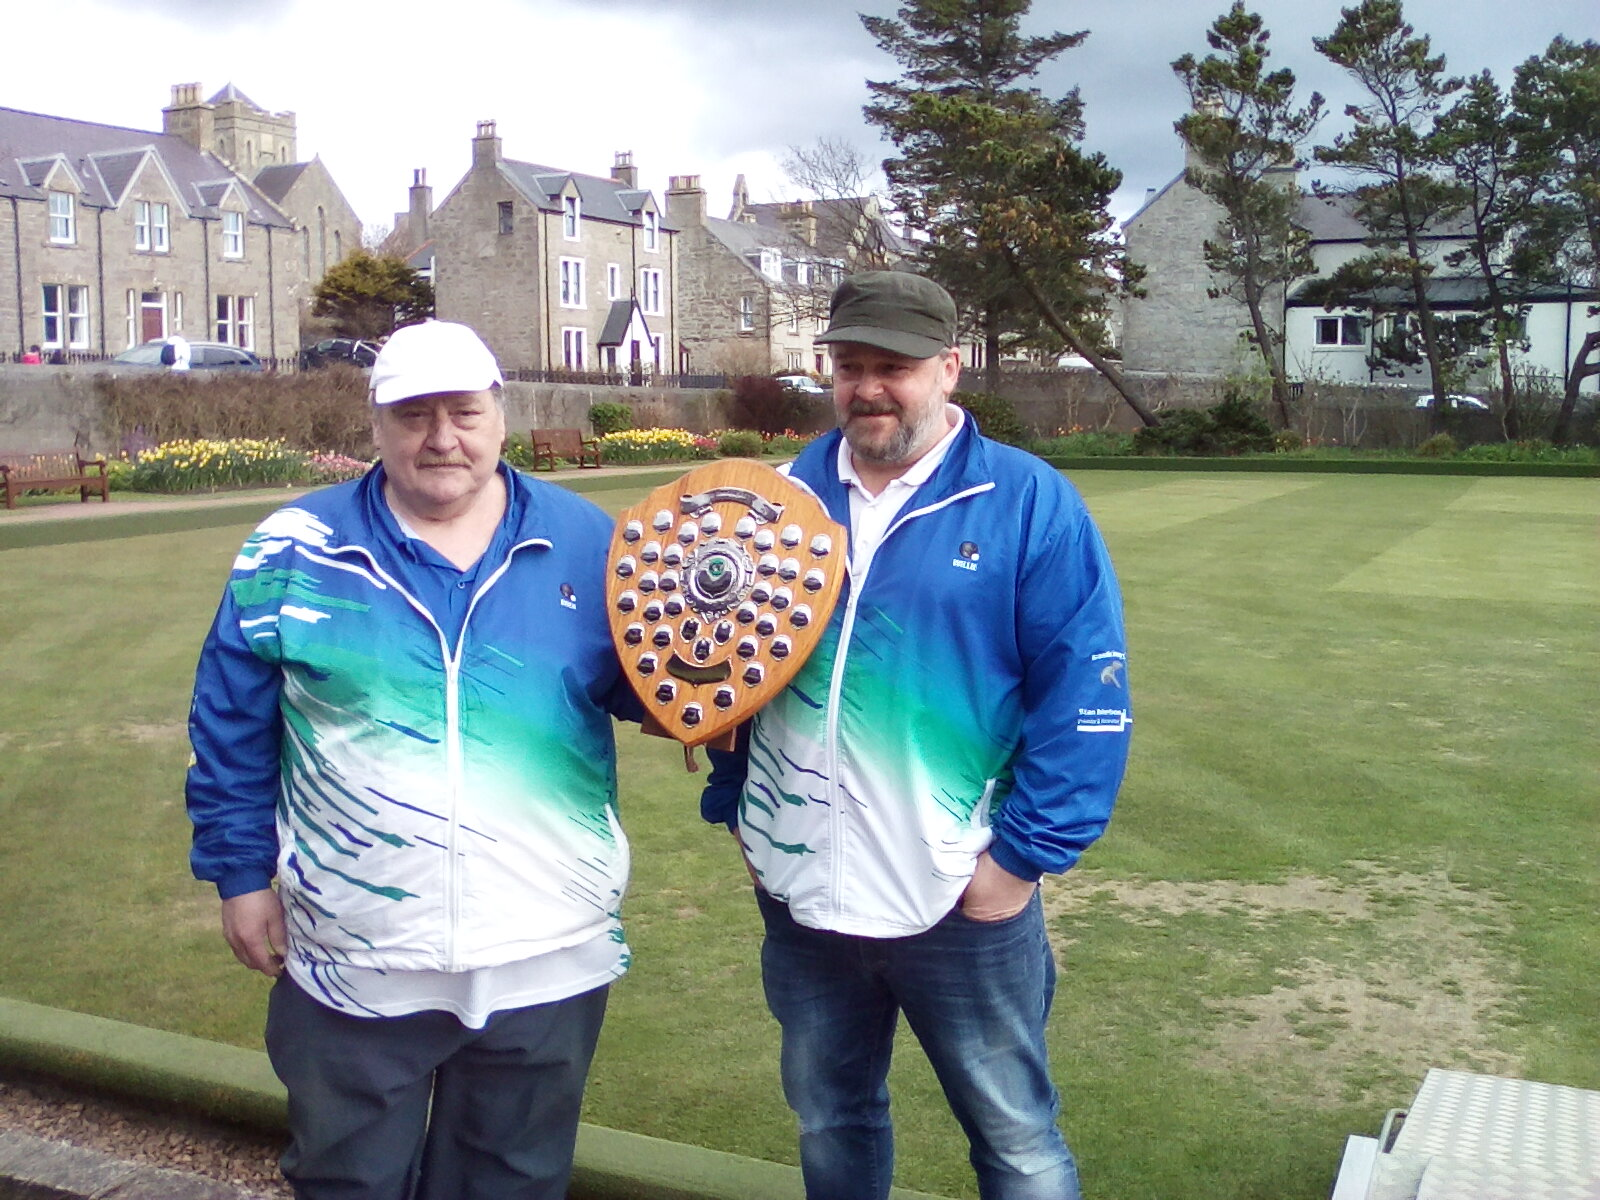 The President, Ewen MacRitchie, who was the runner-up, presented Willie (right) with the shield.